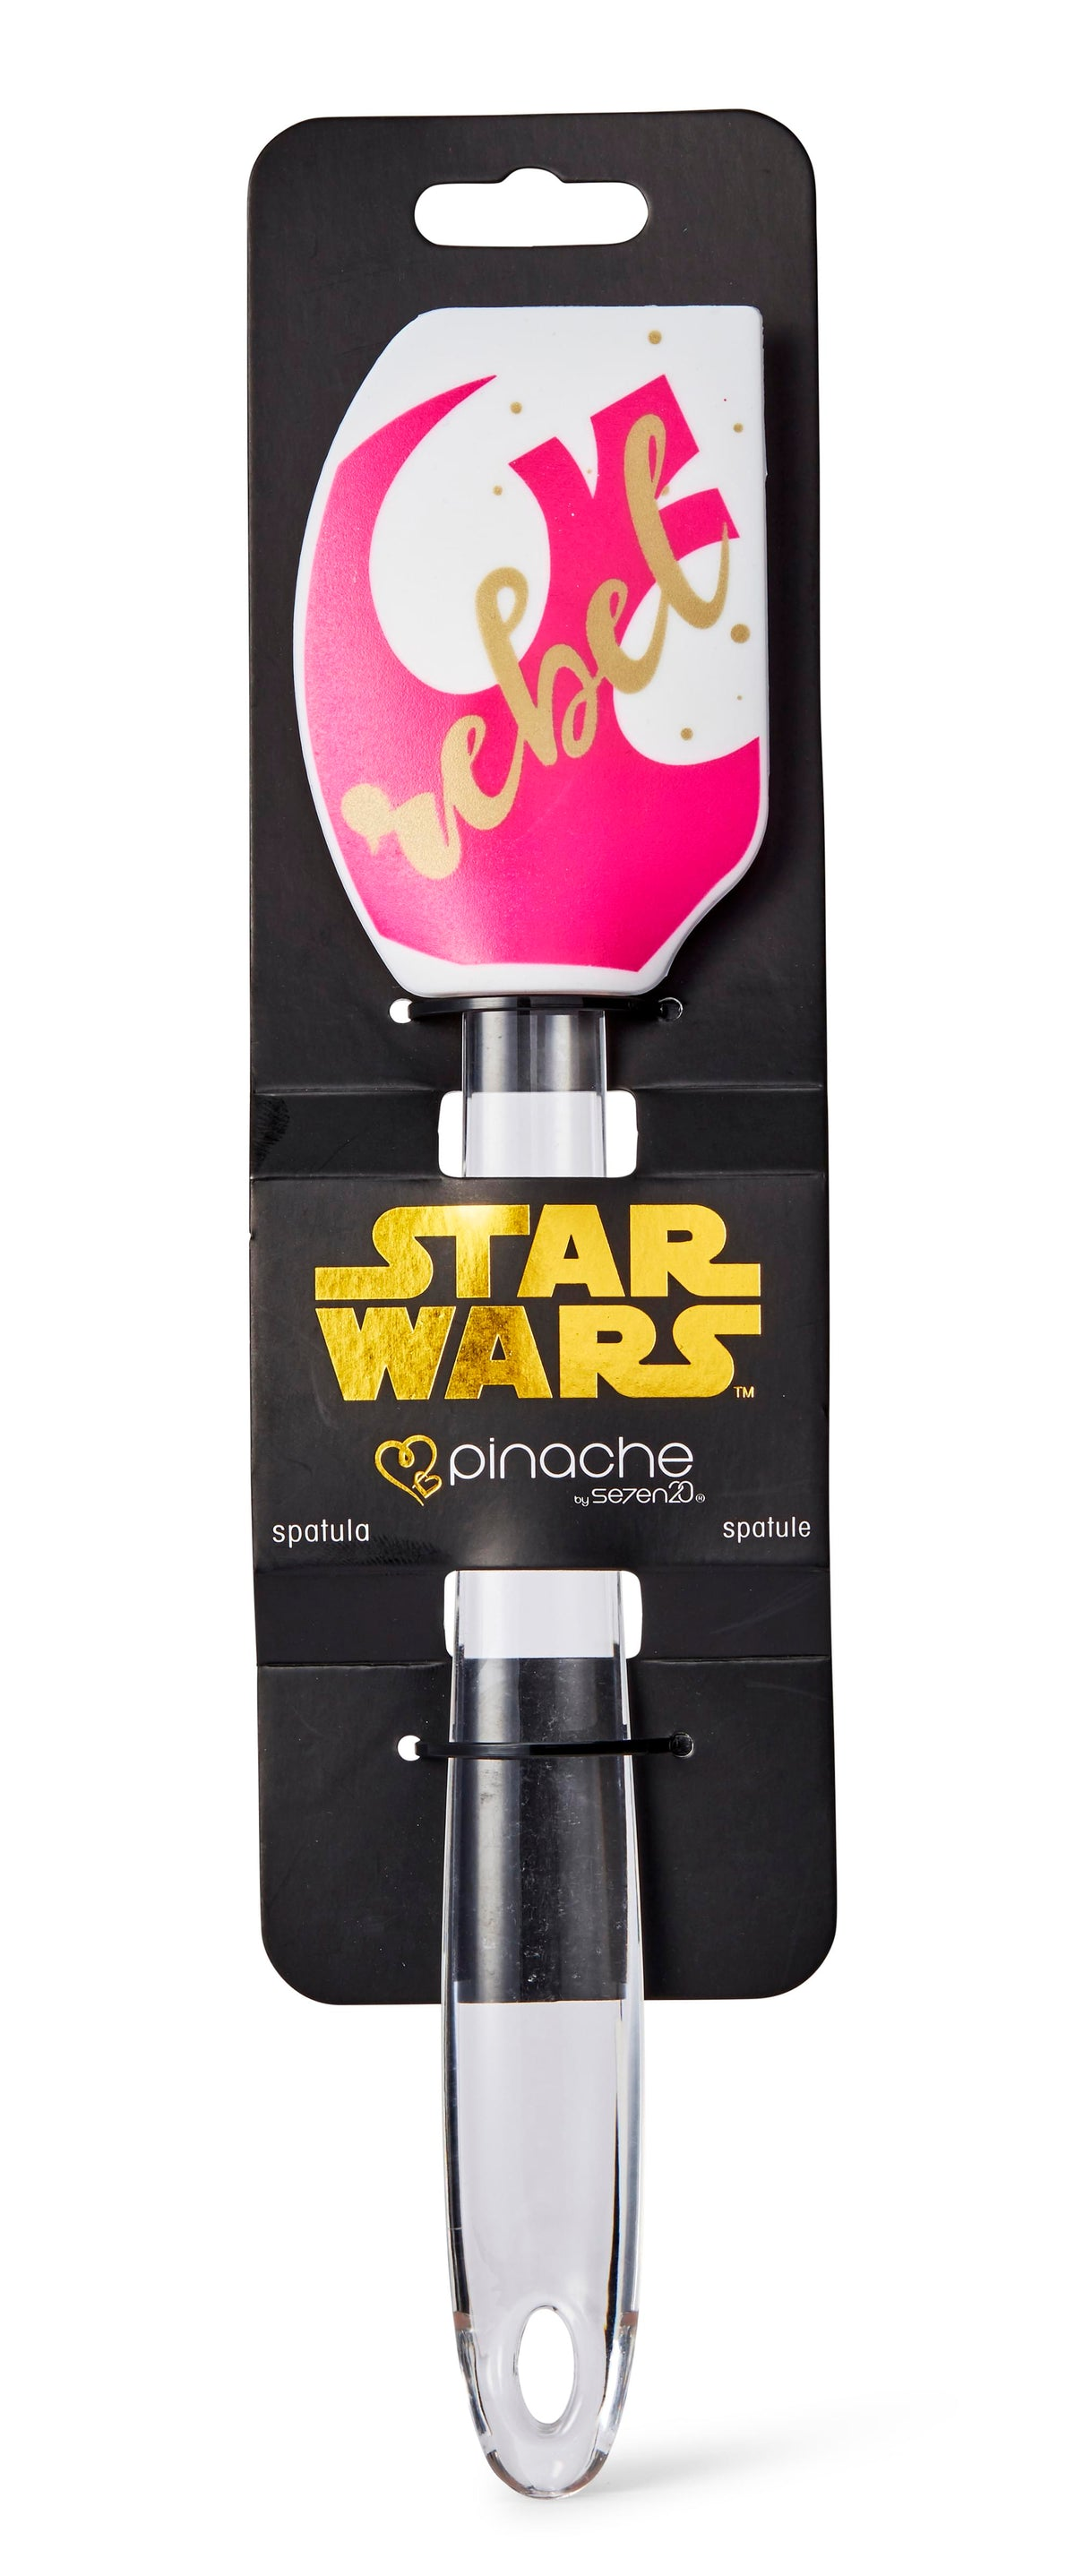 Star Wars White/Pink Rebel 11 Inch Silicone Spatula